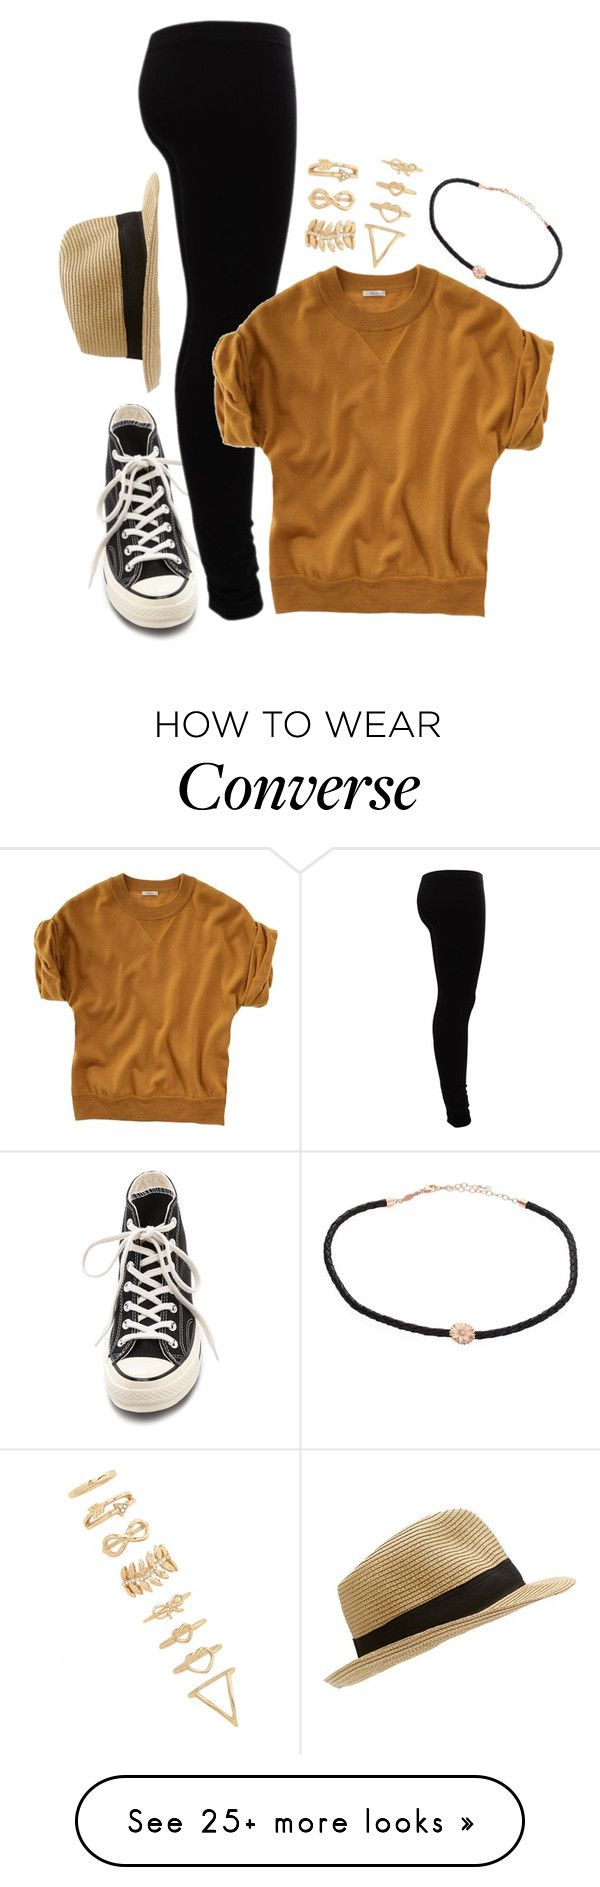 """You and me got a whole lotta history :)"" by weirdestgirlever on Polyvore featuring Converse, Forever 21, Jacquie Aiche, Gestuz and Madewell"